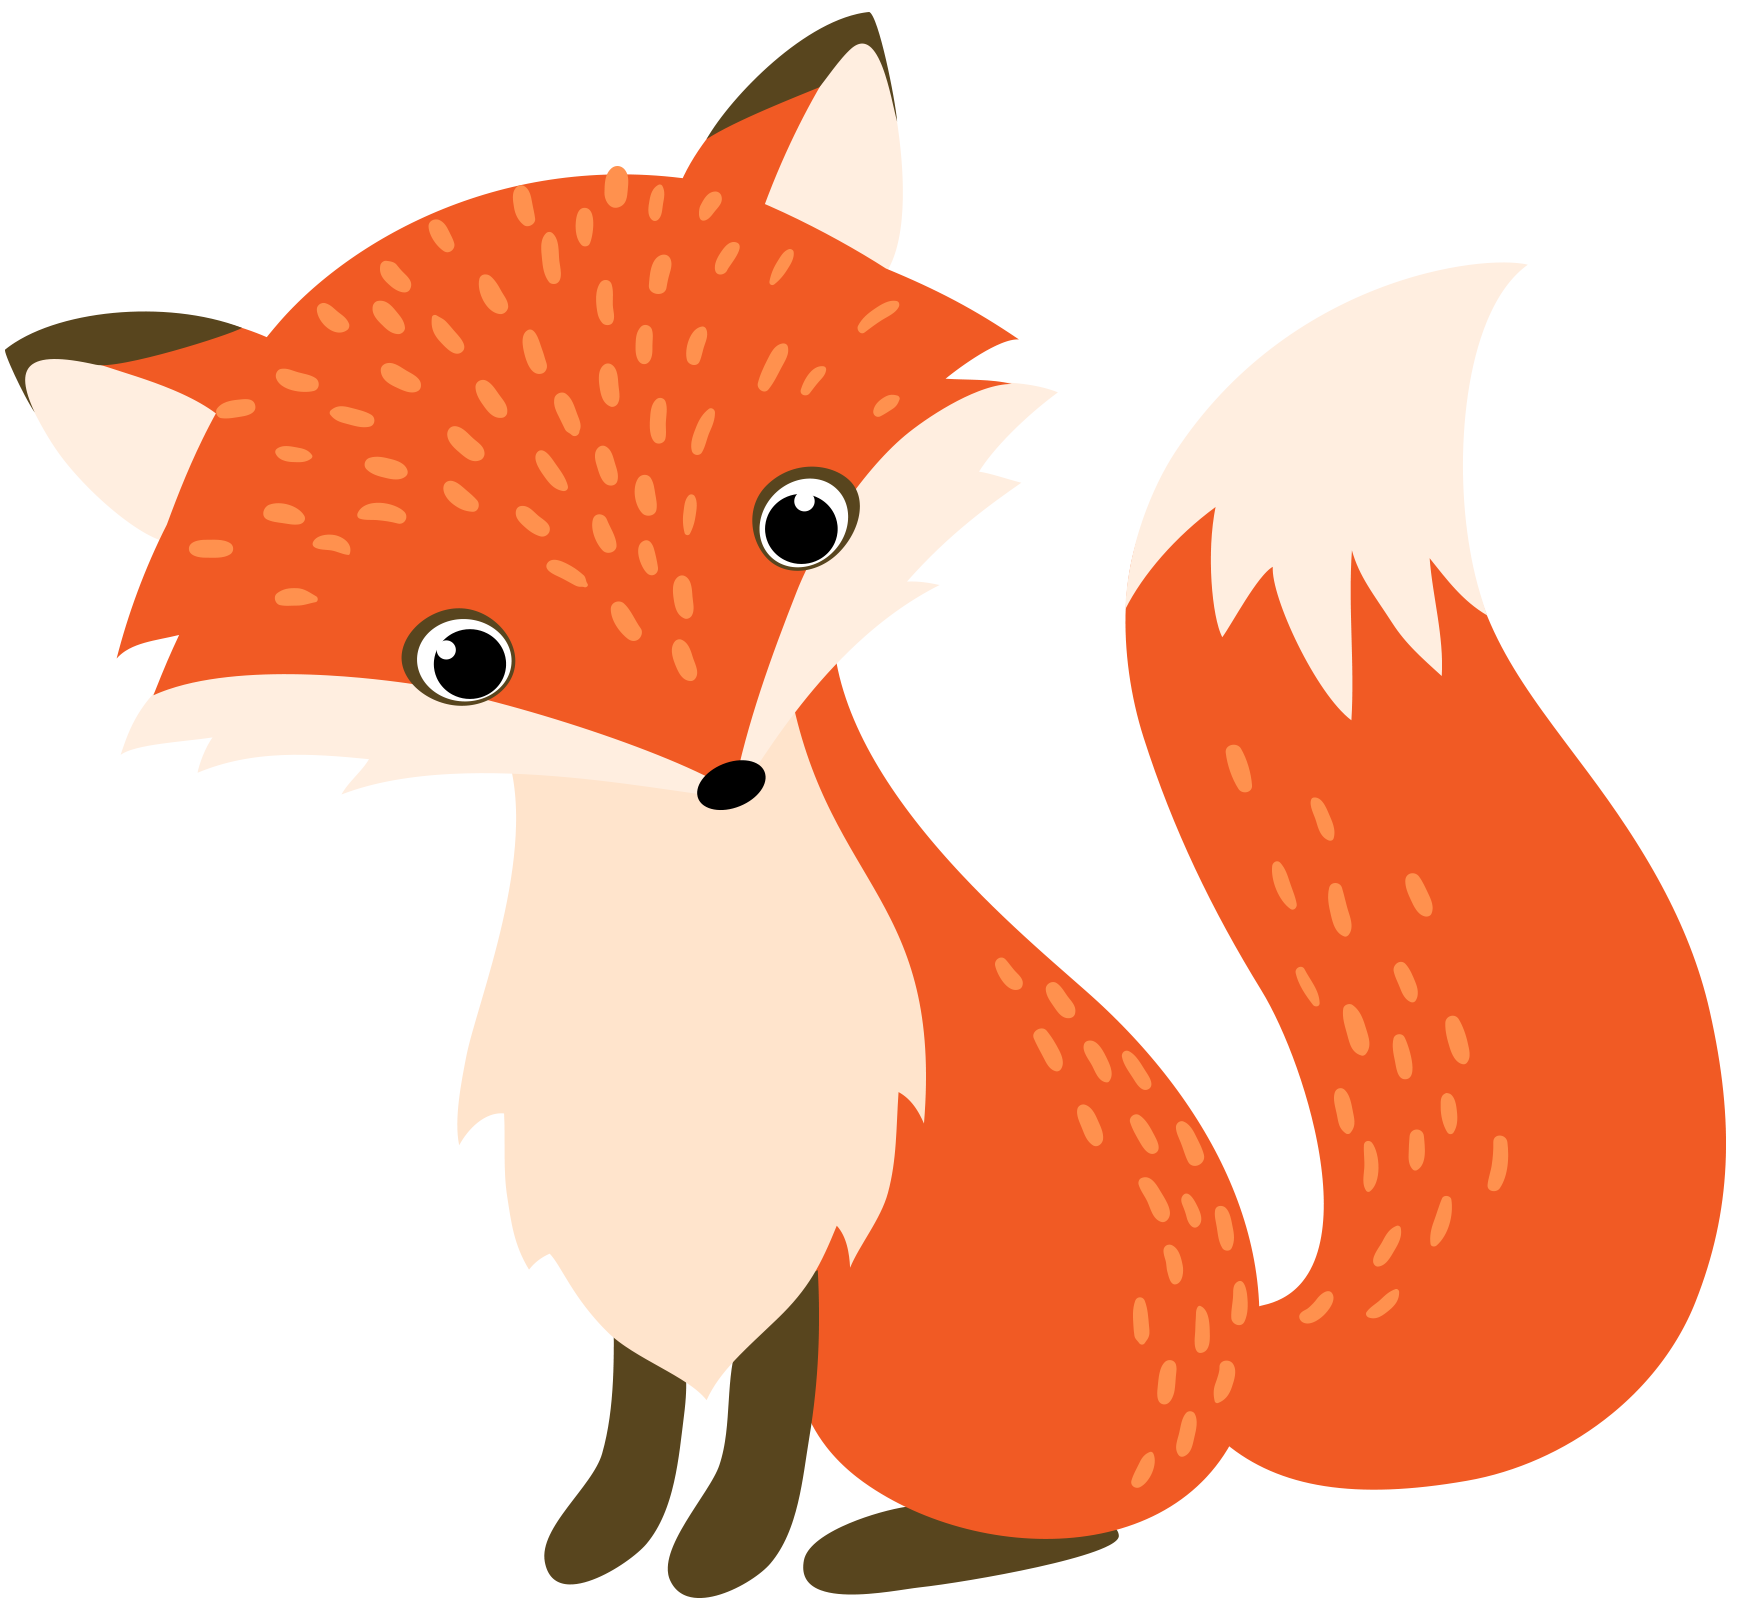 Smart on carton recycling. Woodland clipart red fox